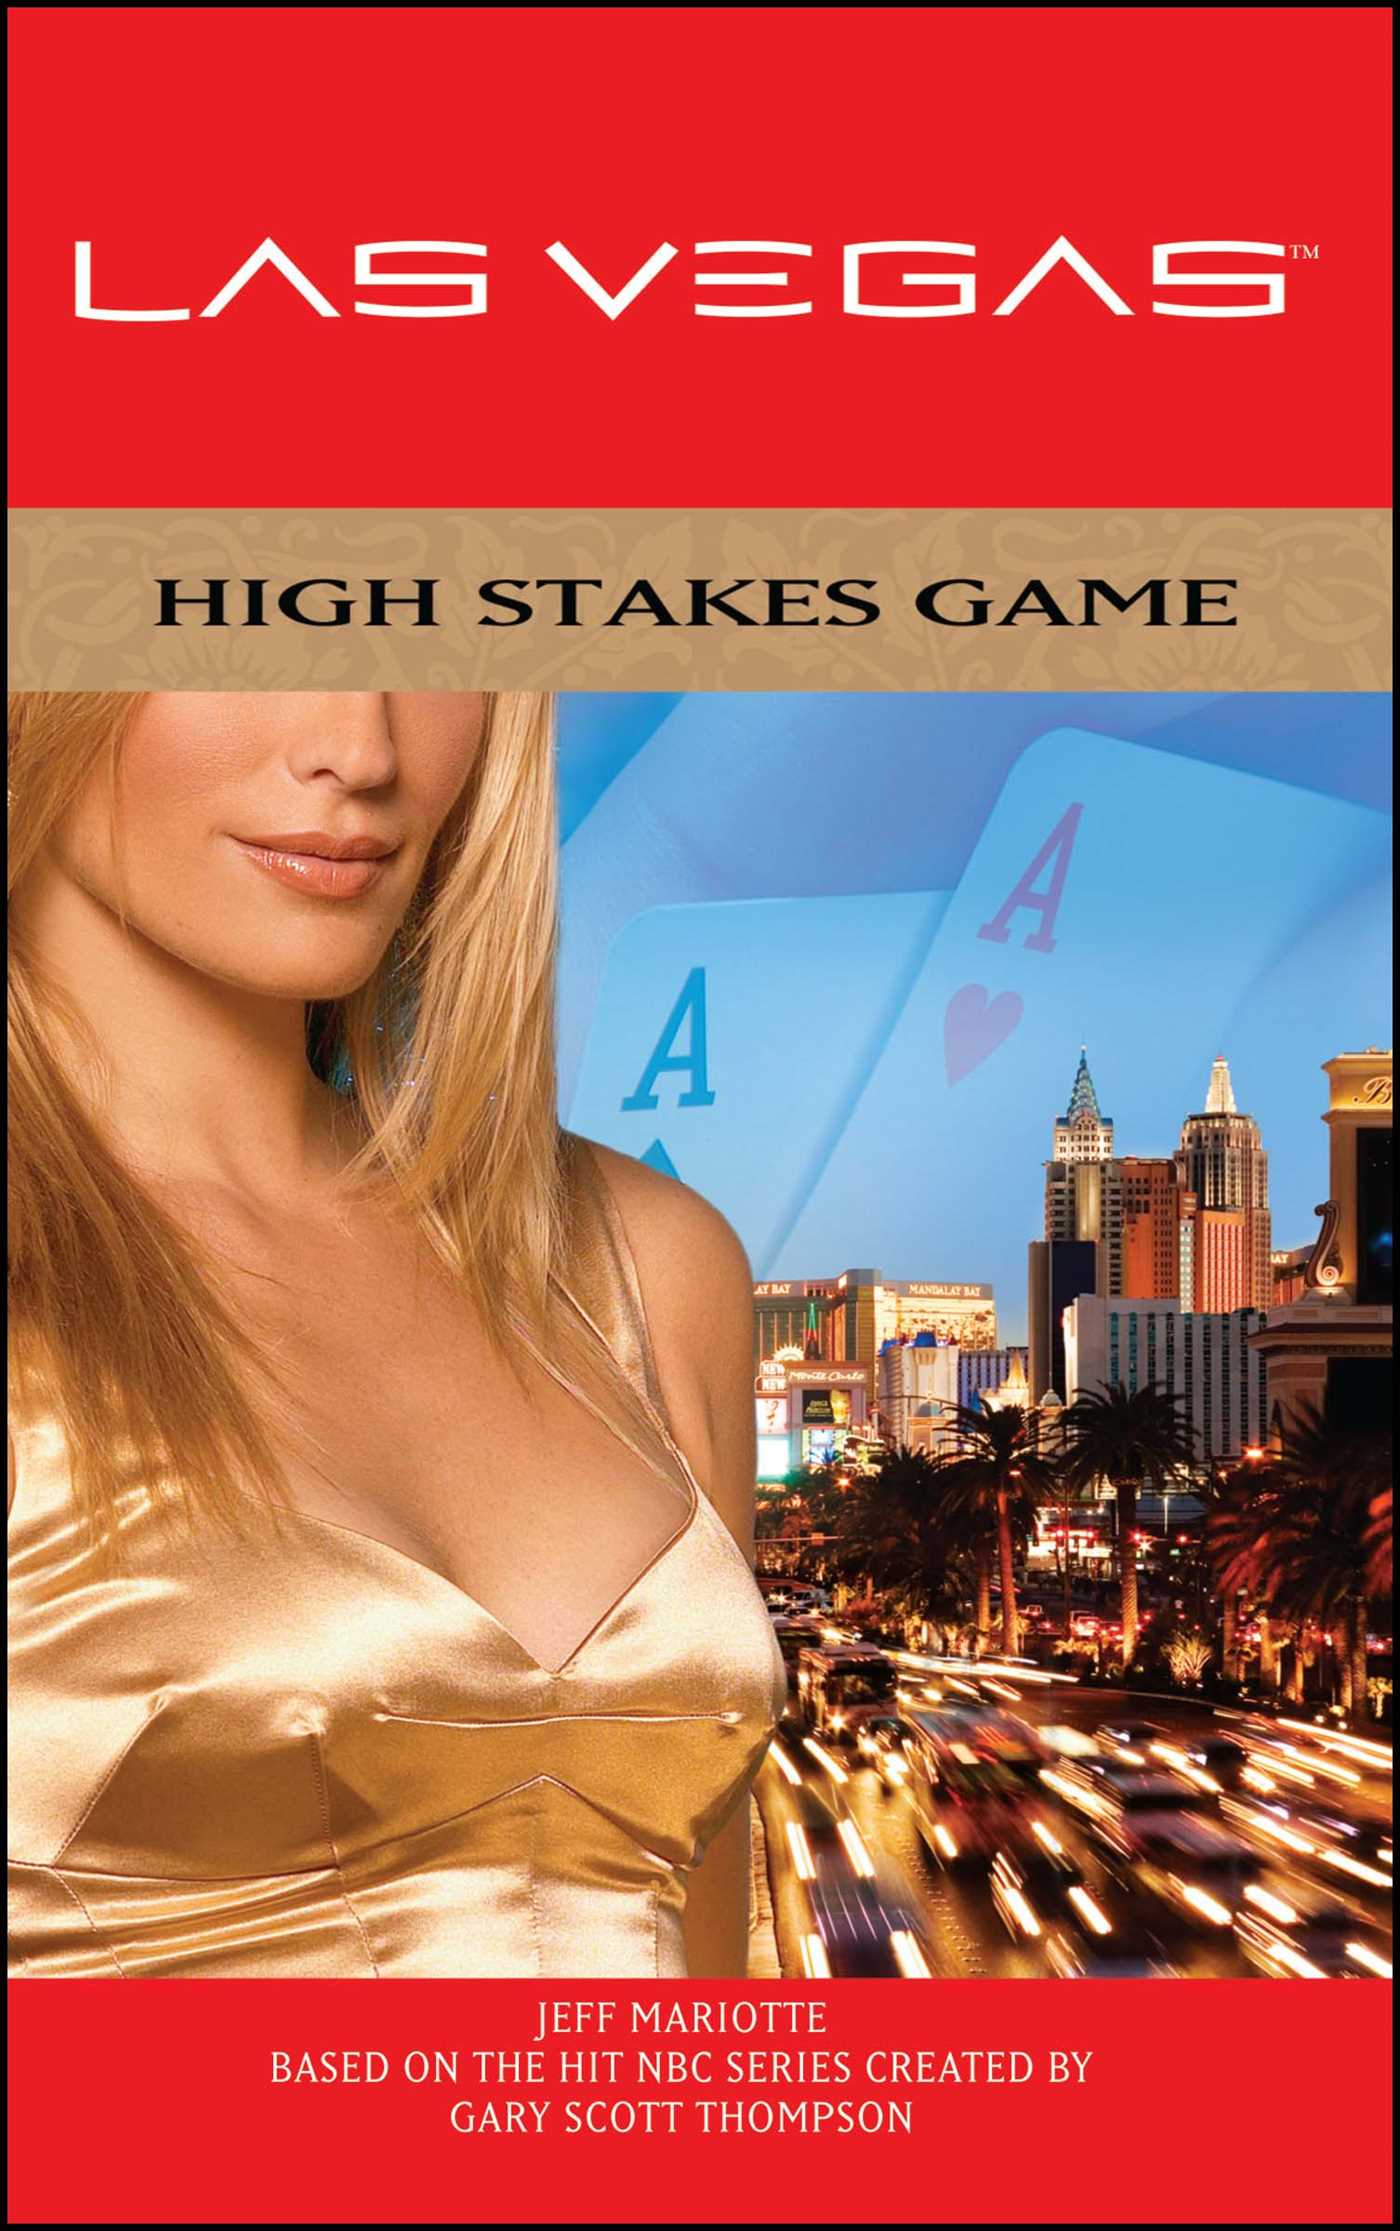 High stakes game 9781416588832 hr